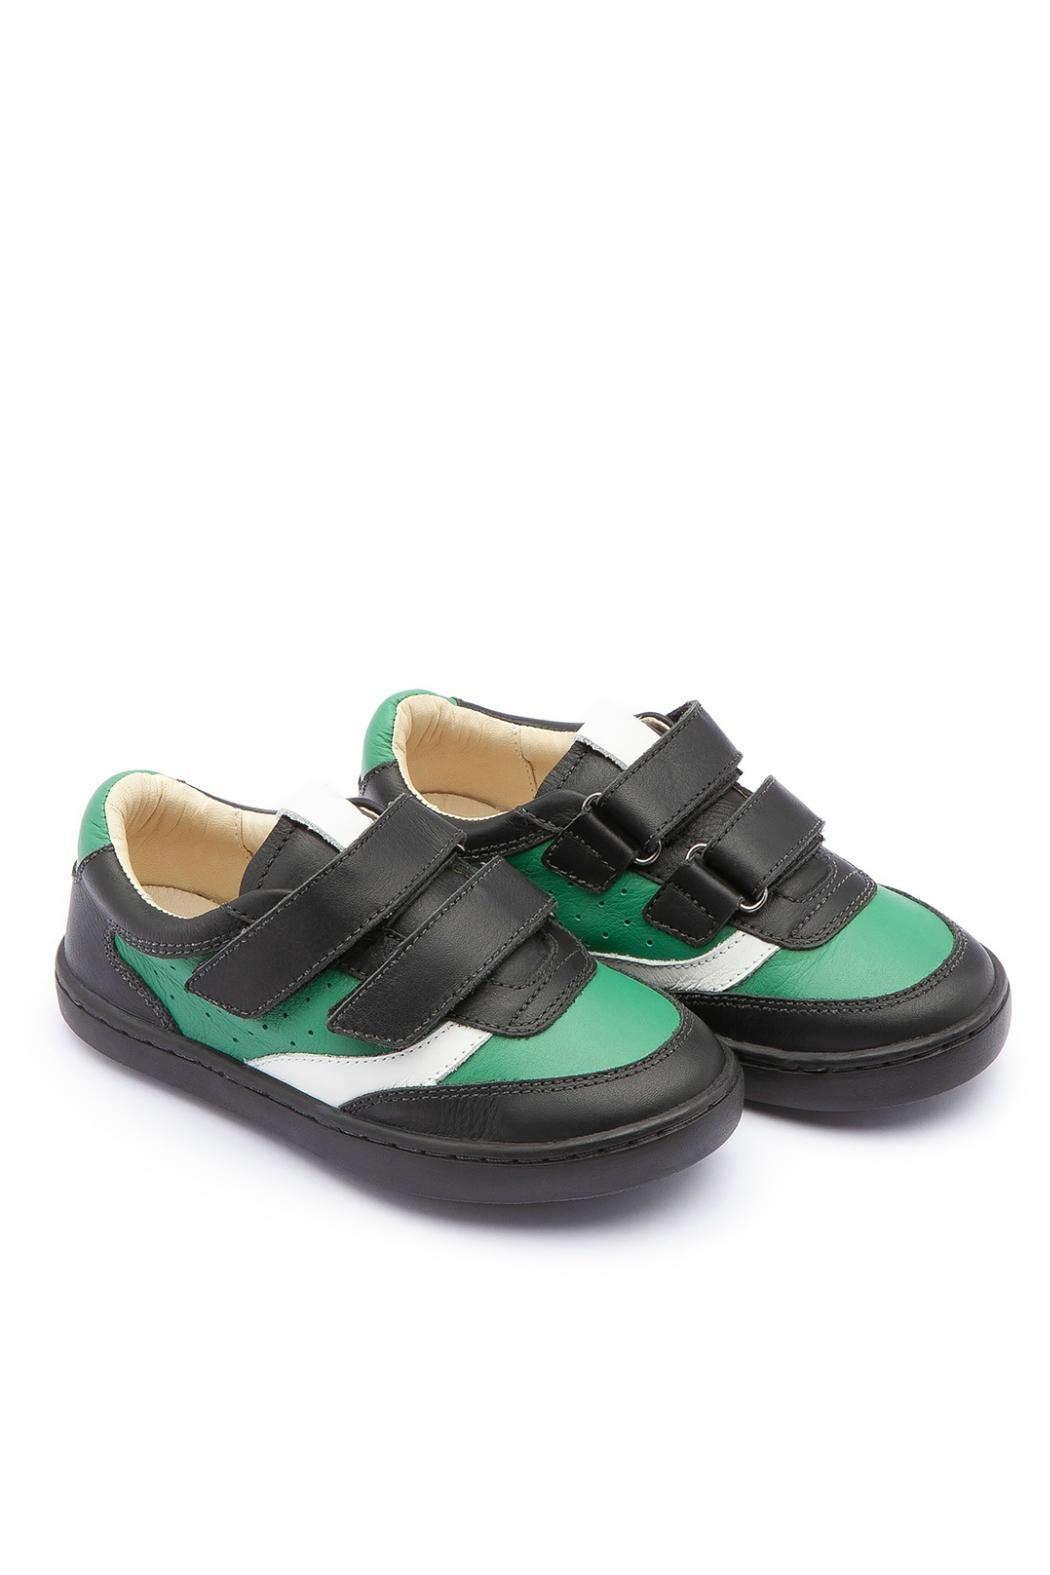 Tip Toey Joey Green Street Sneakers - Front Cropped Image